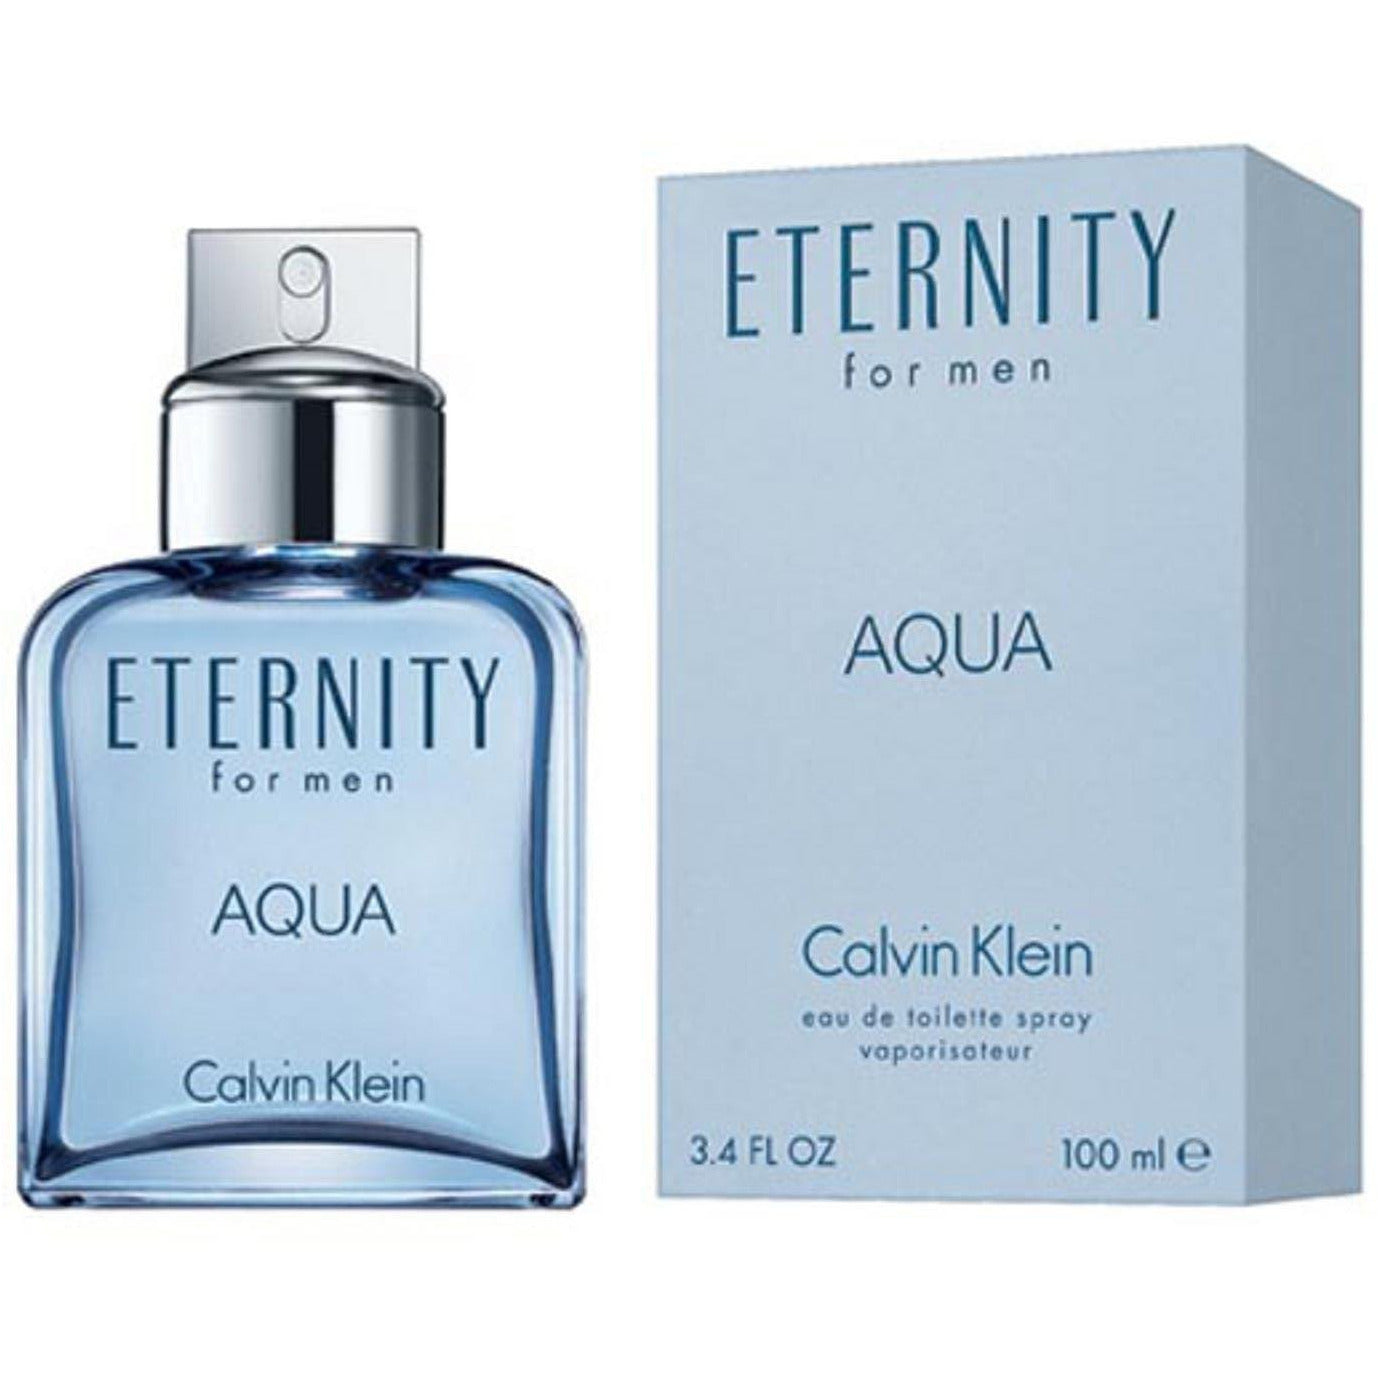 eternity-aqua-by-calvin-klein-for-men-cologne-3-4-oz-edt-new-in-box